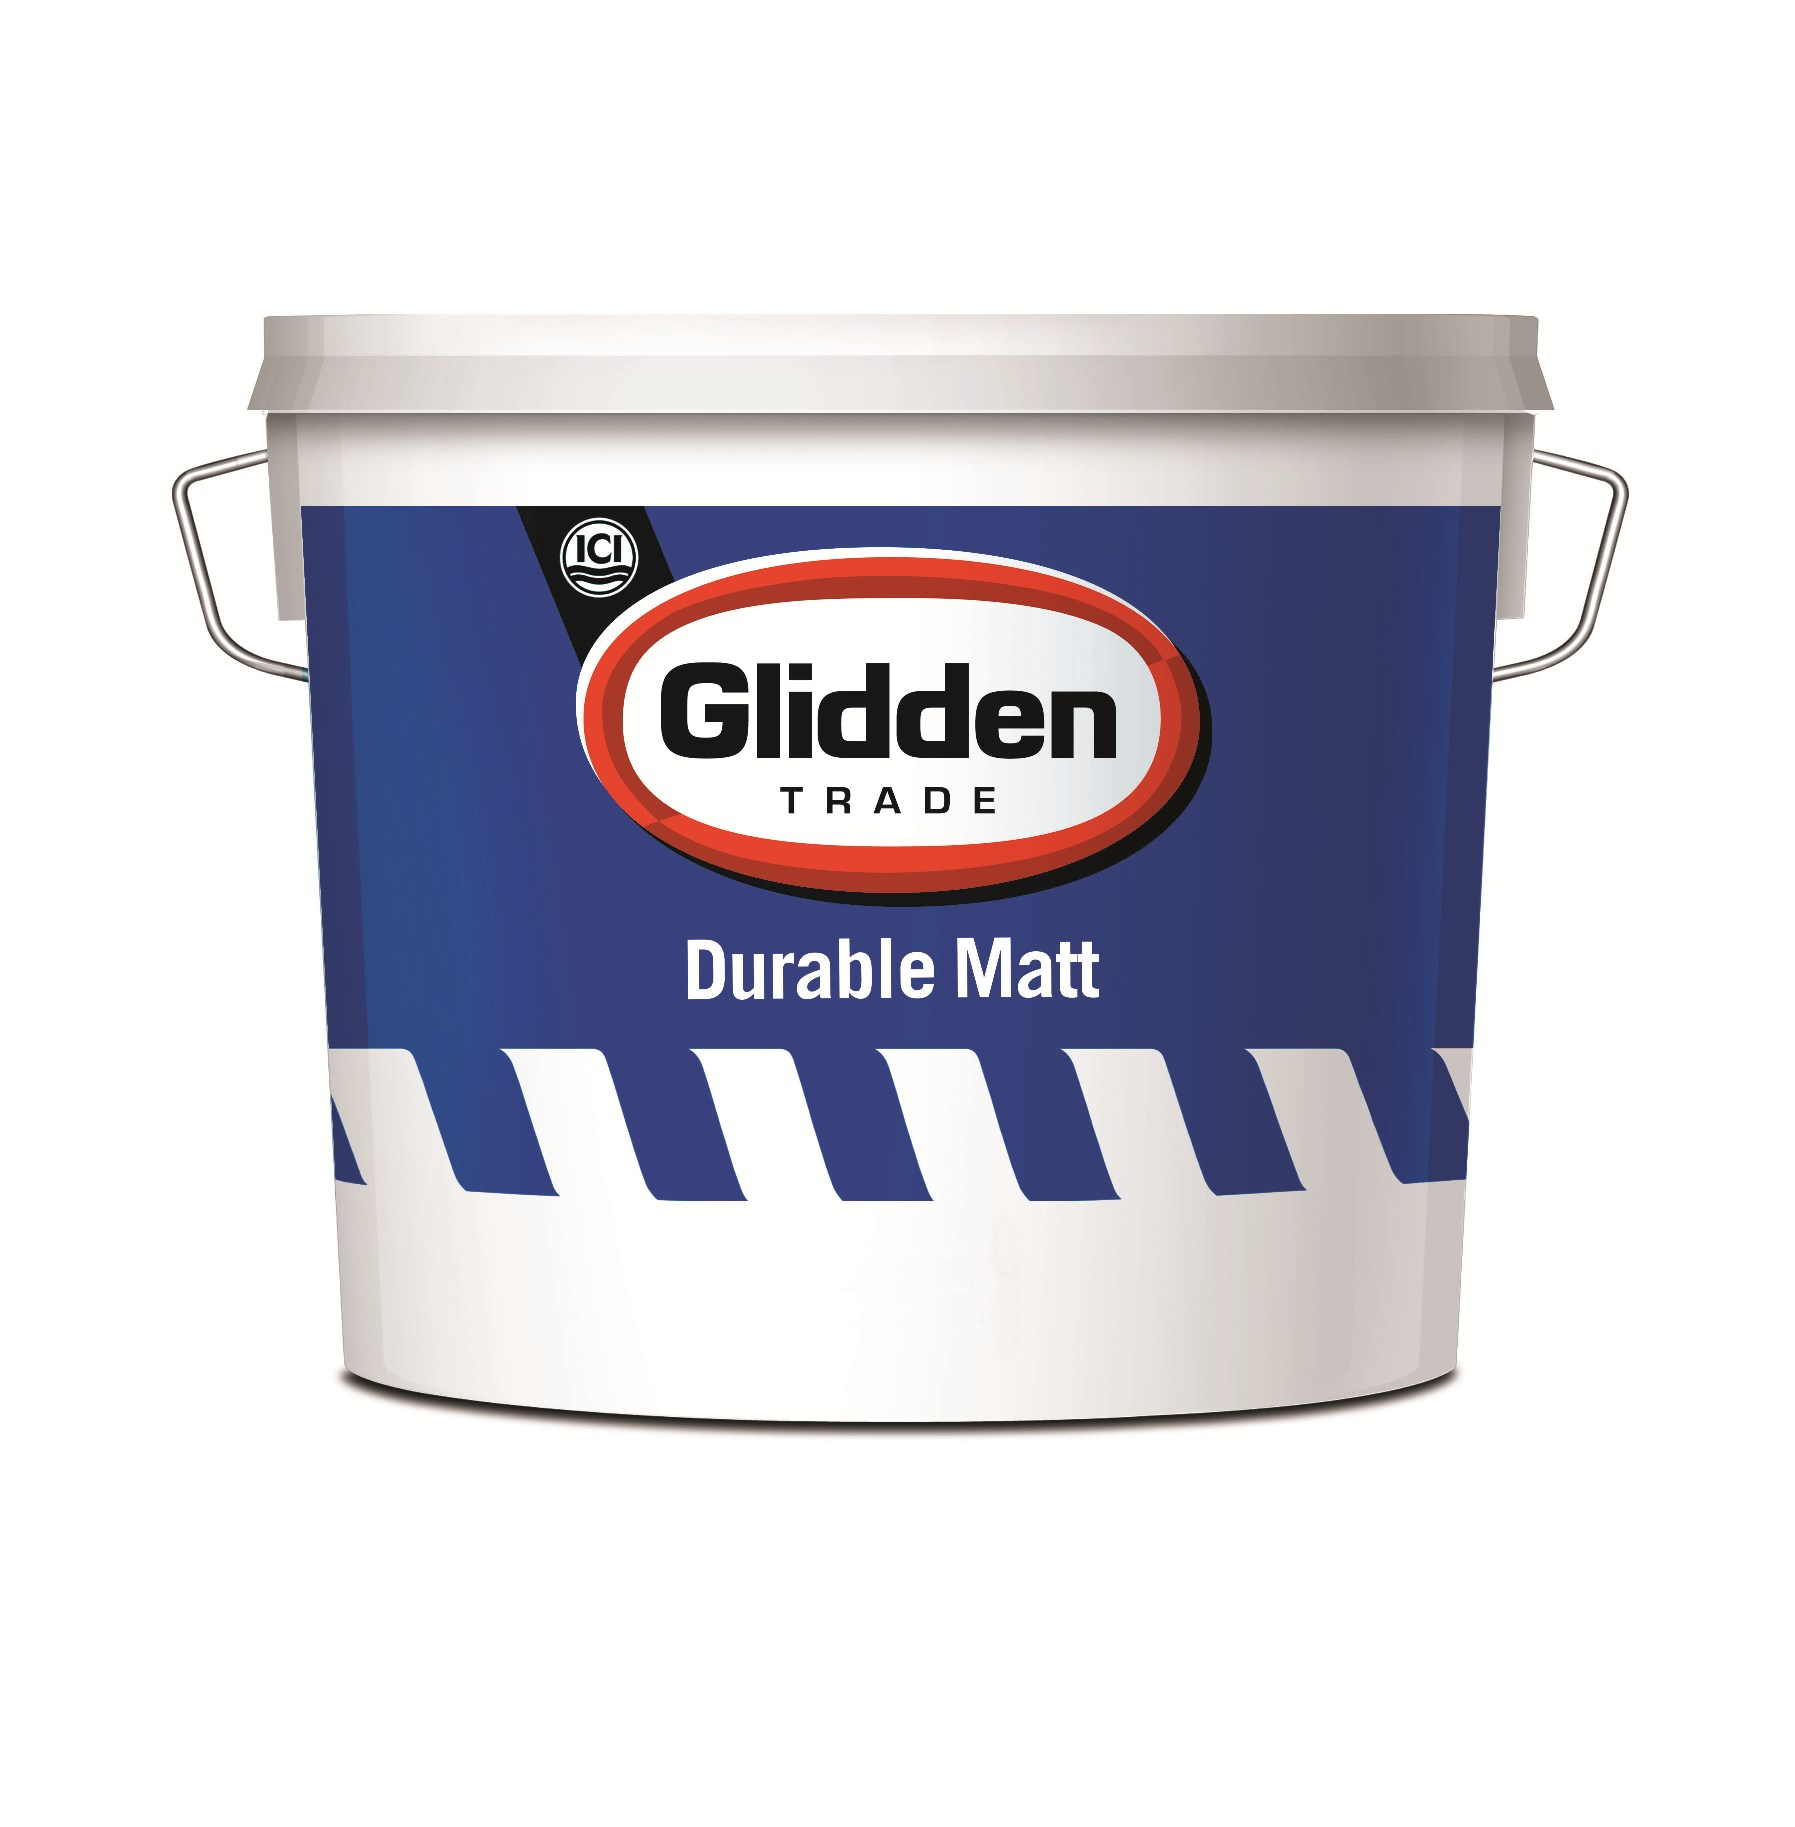 Glidden Trade Lifts The Lid On New Durable Matt Paint